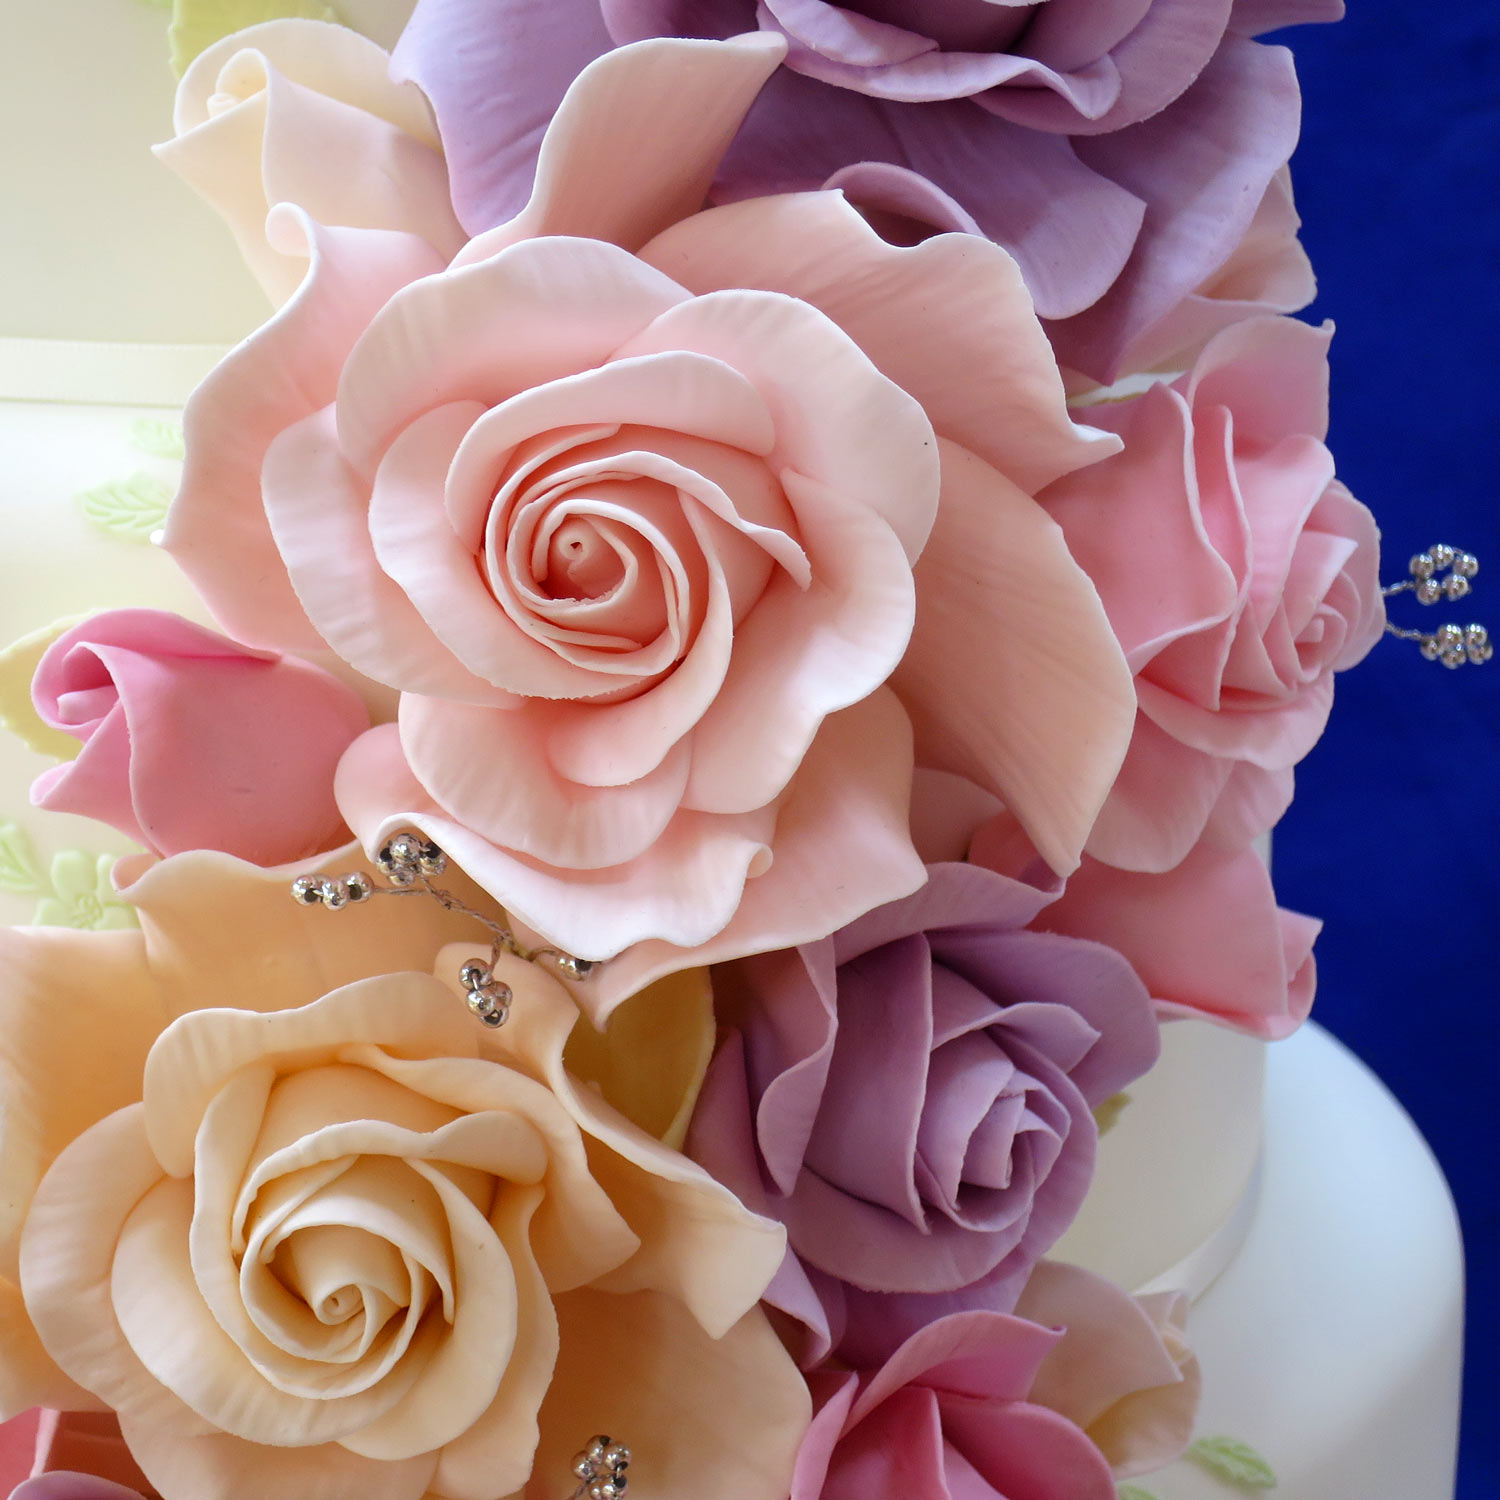 Uby Pre Wedding Cake Decorated With Cascading Sugar Roses In Pastel